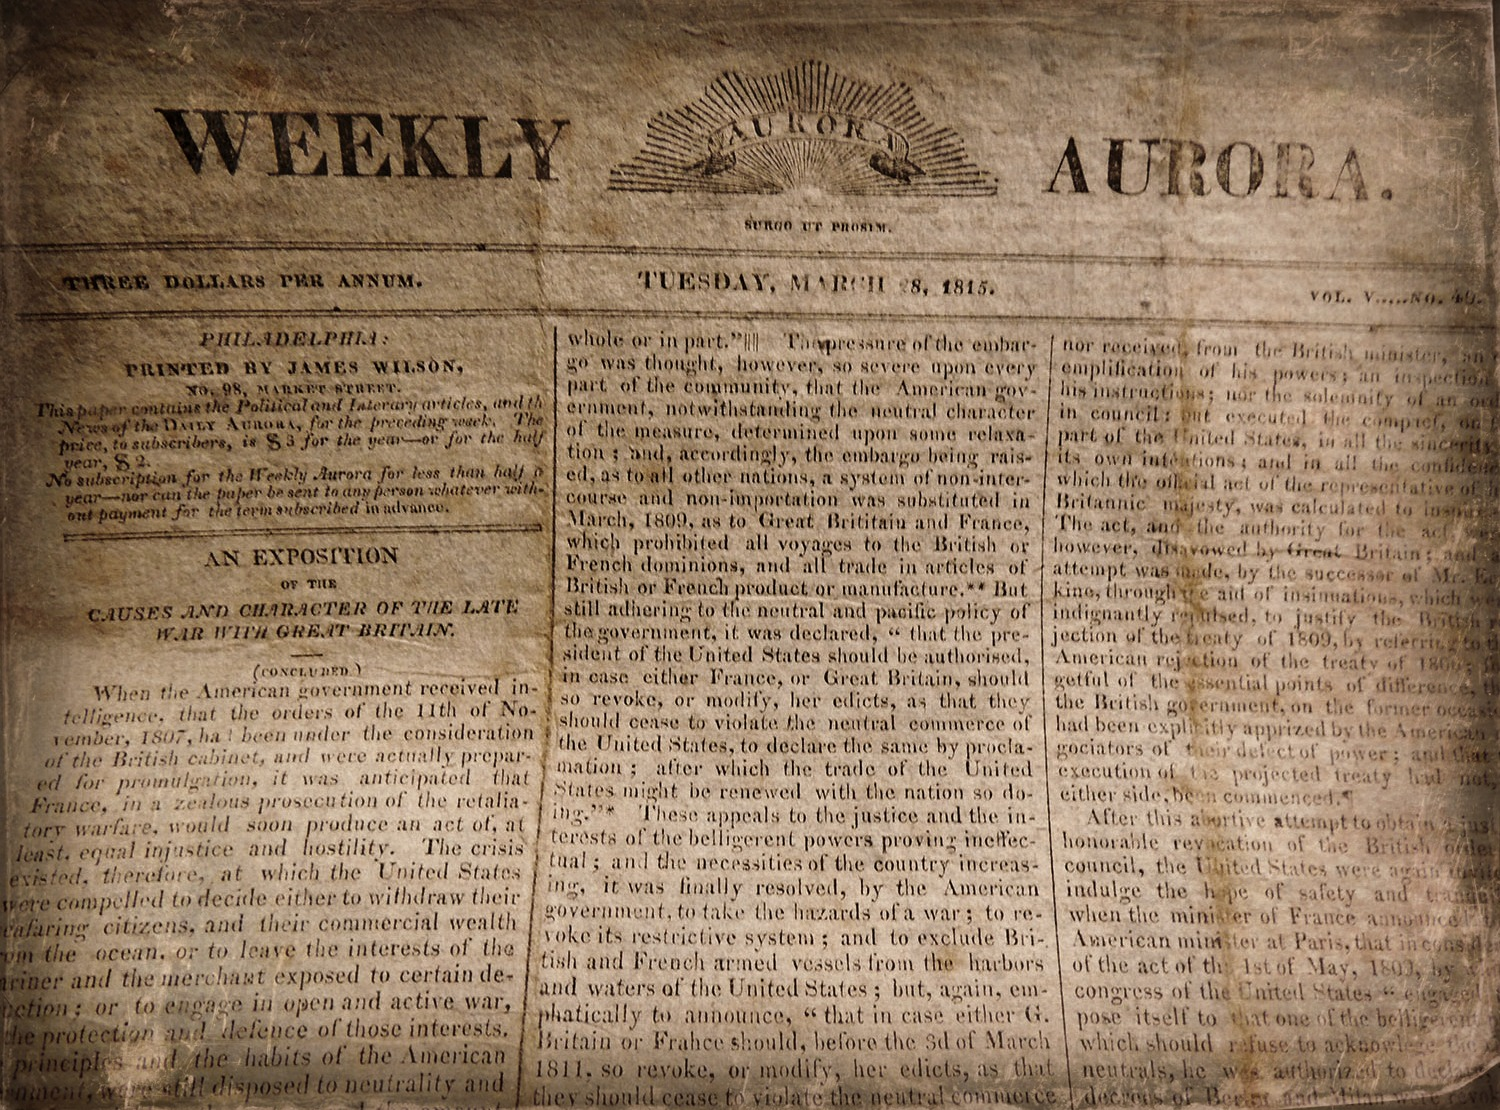 british historia obscura the weekly aurora of philadelphia